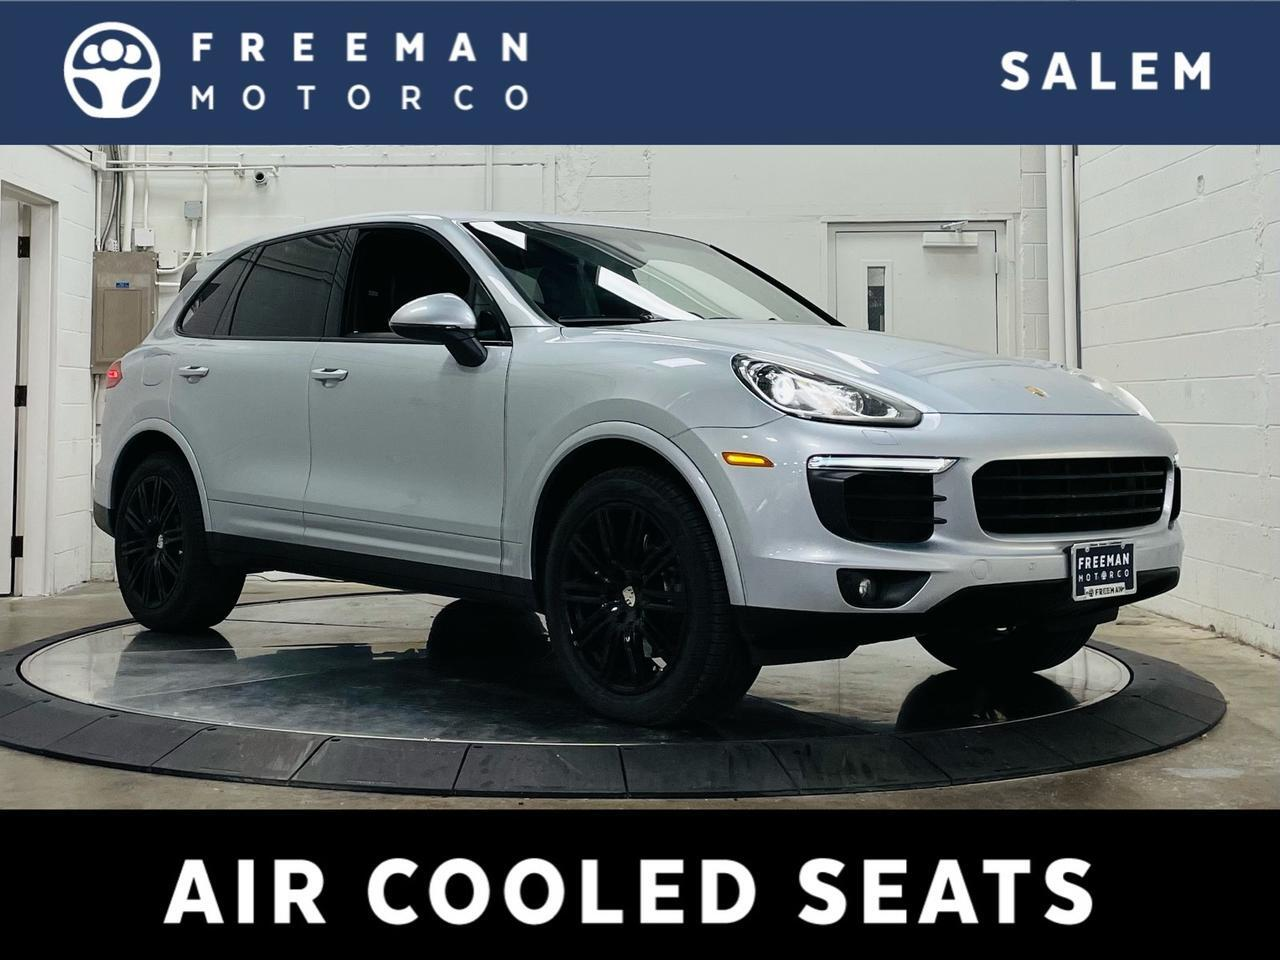 2017 Porsche Cayenne AWD Platinum Edition Heated/Ventilated Seats Salem OR